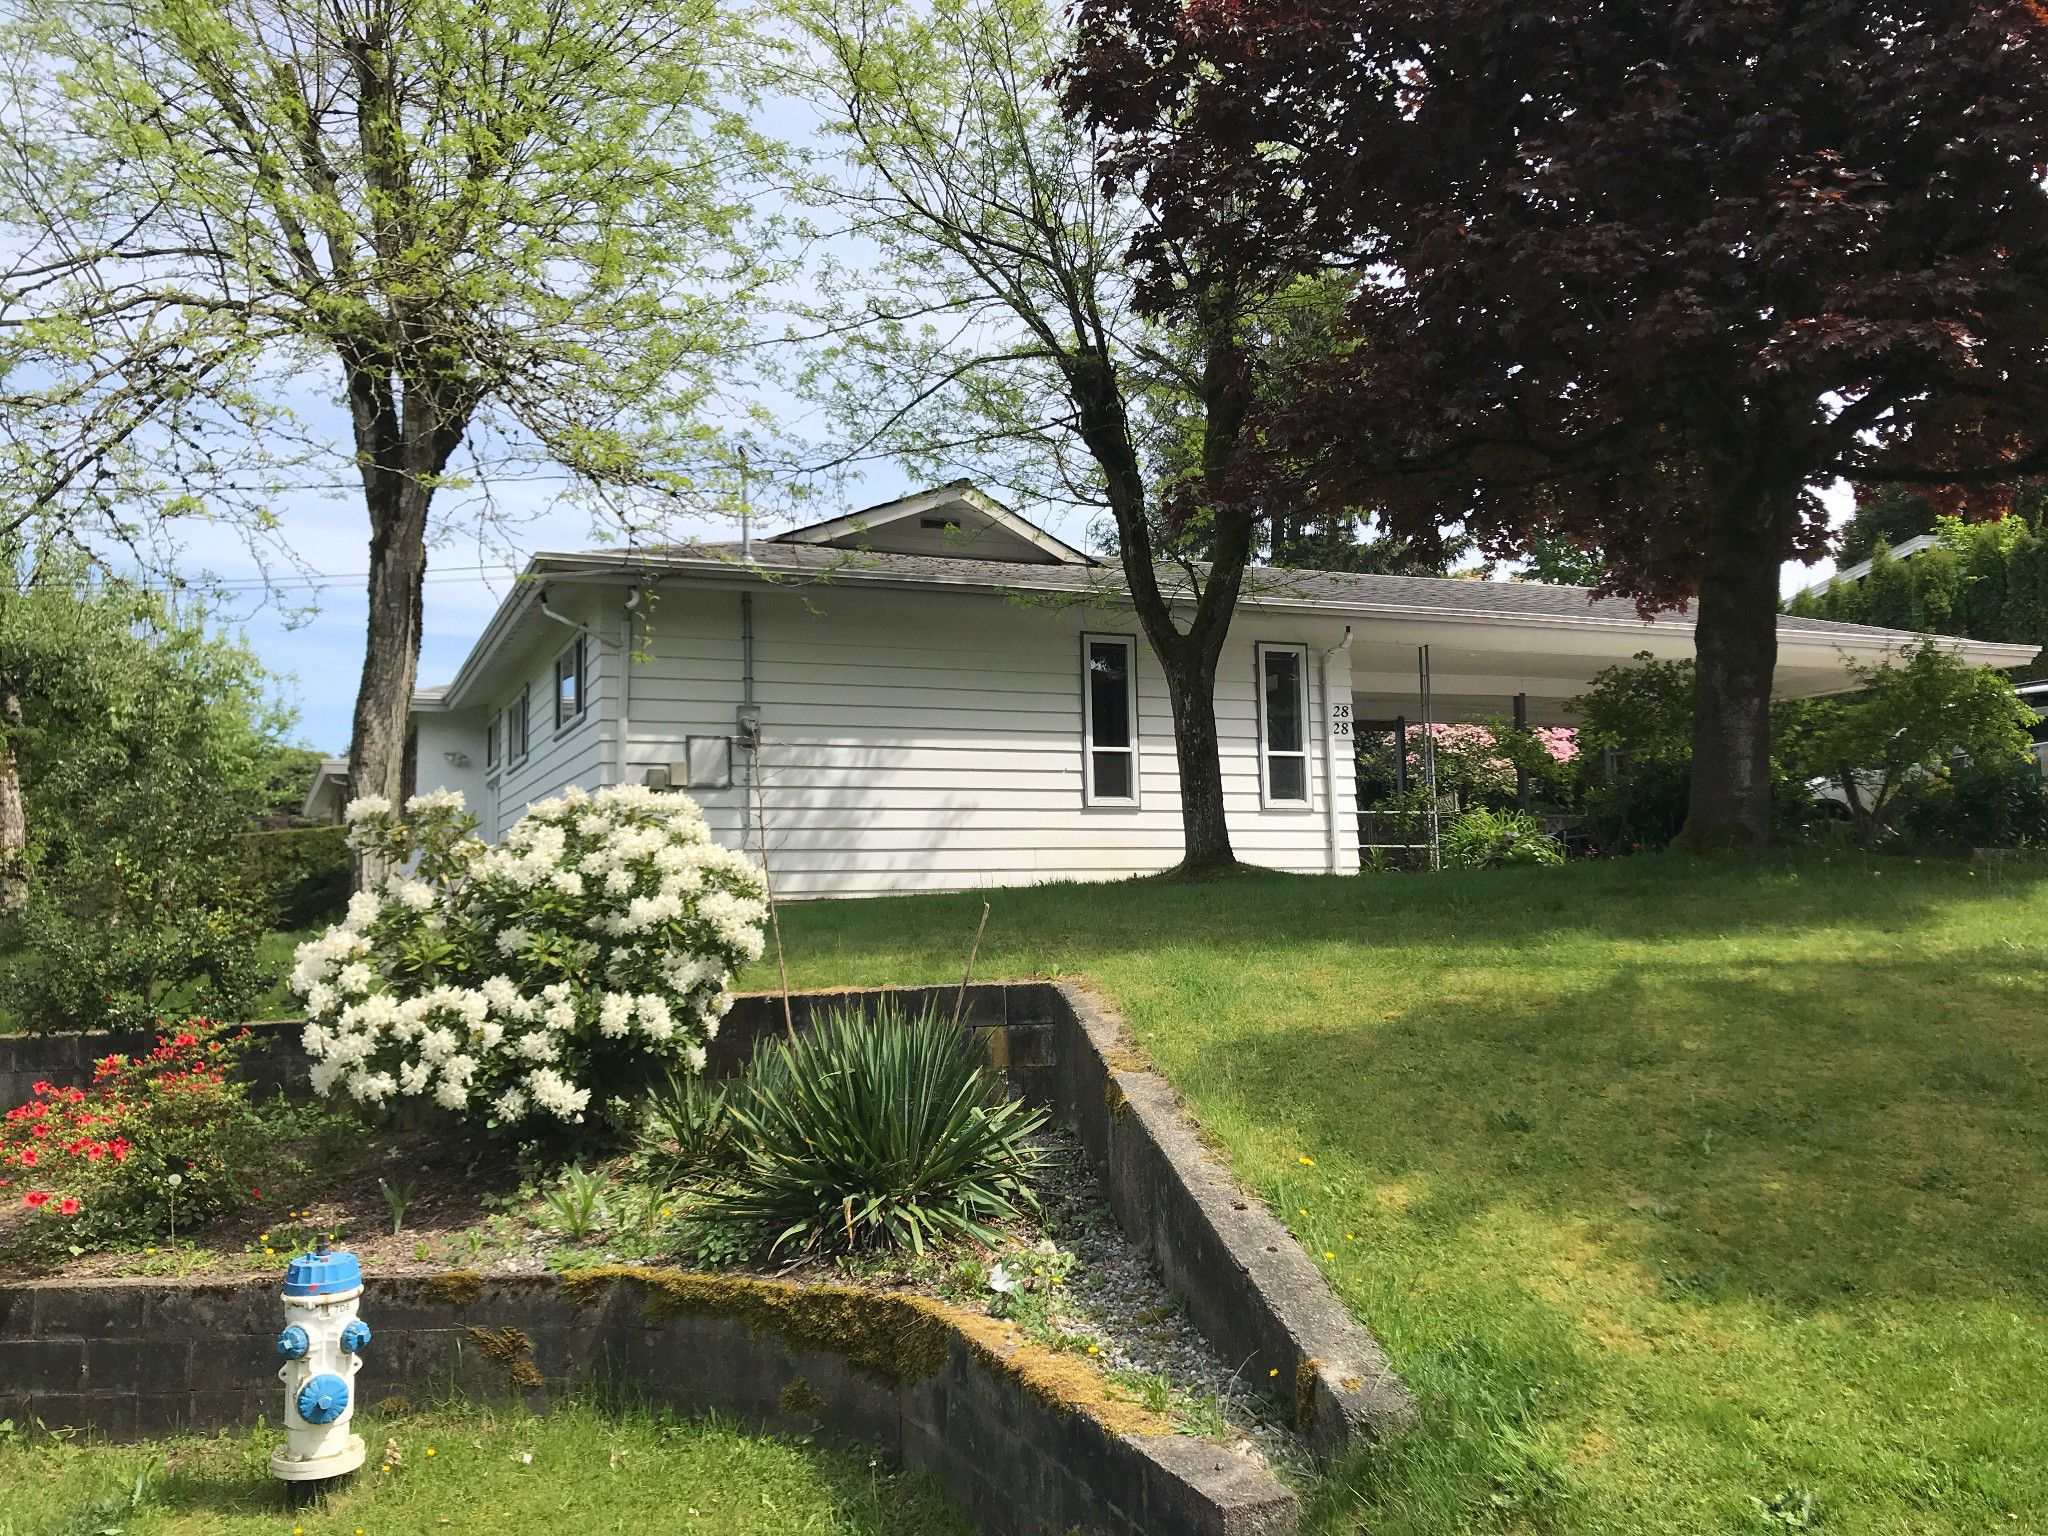 Main Photo: 2828 Arlington St. in Abbotsford: Central Abbotsford House for rent